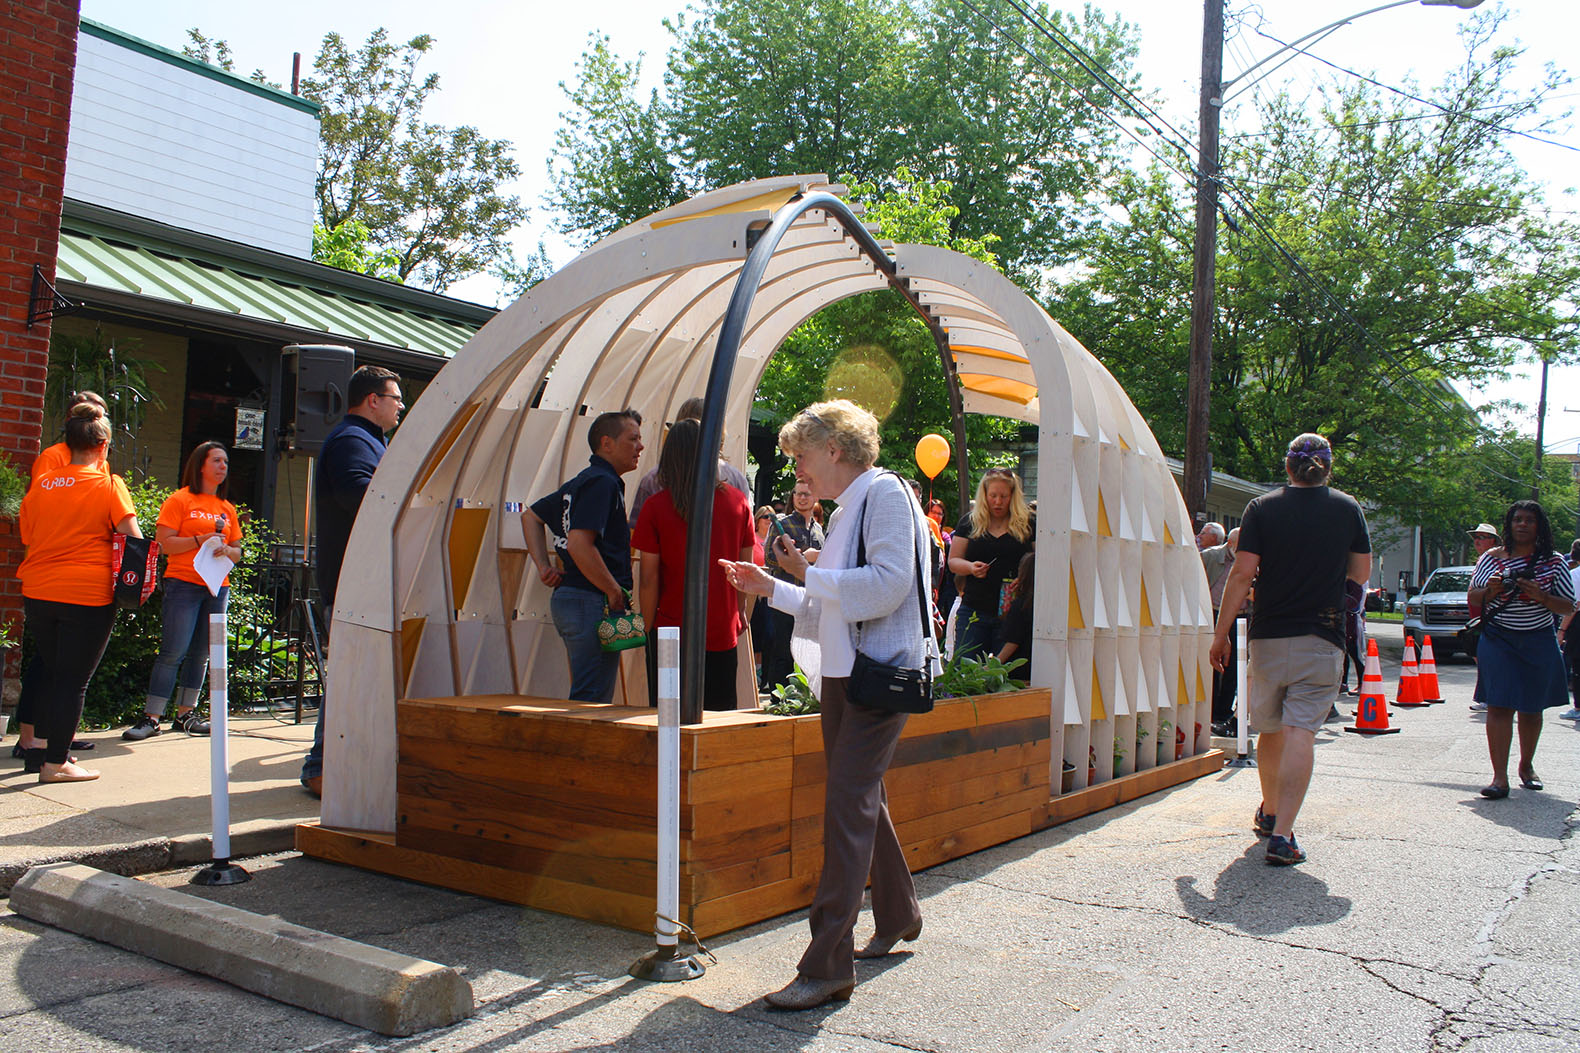 Public place recycling products - Charming Upcycled Igloo Parklet Brings The Community Together With A Place To Leave Wishes